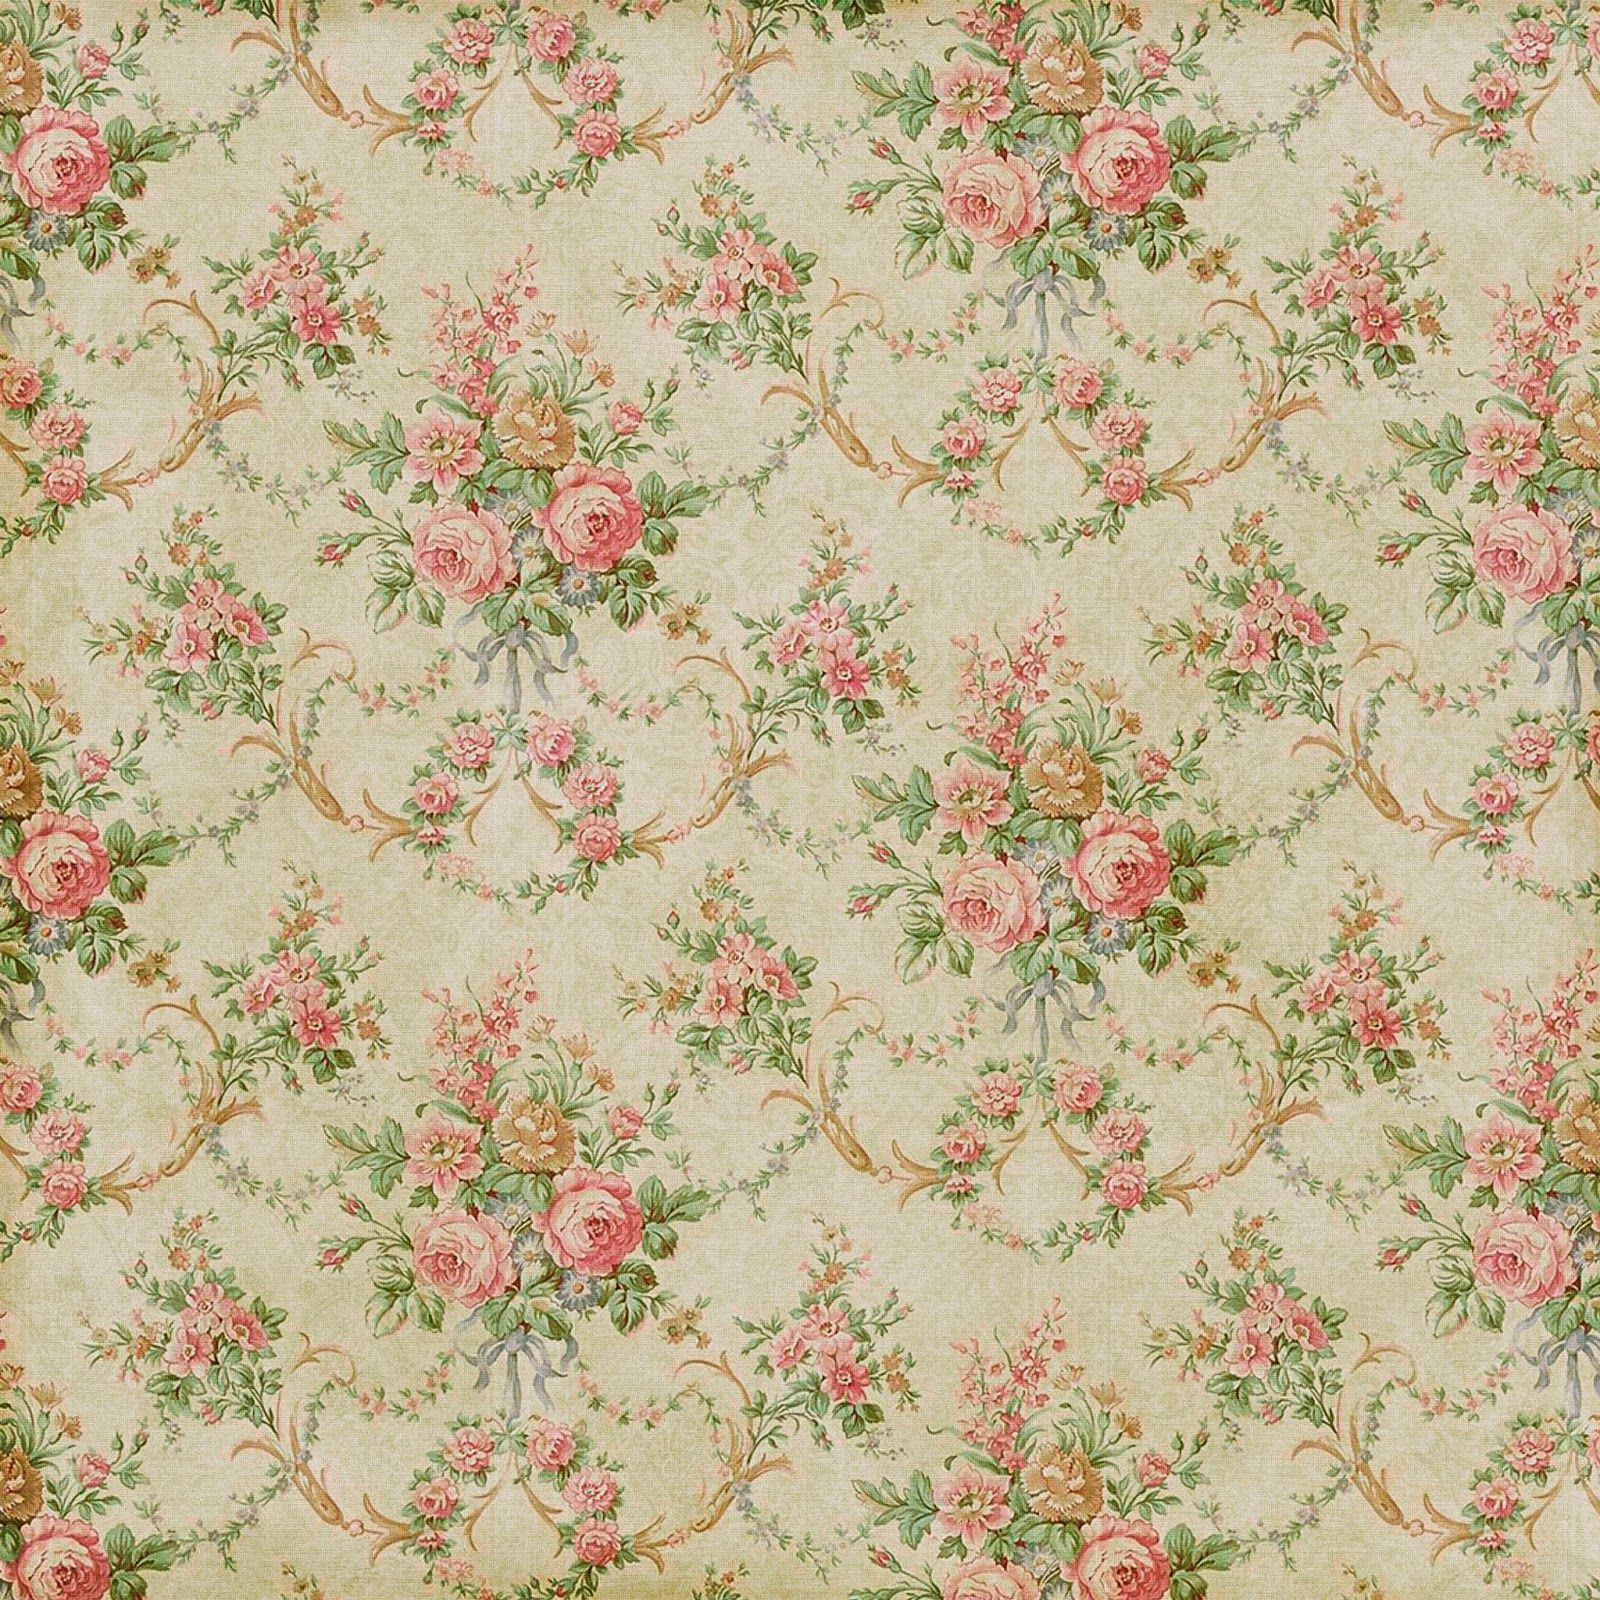 antique faded vintage wallpaper floral flower rose pink red design